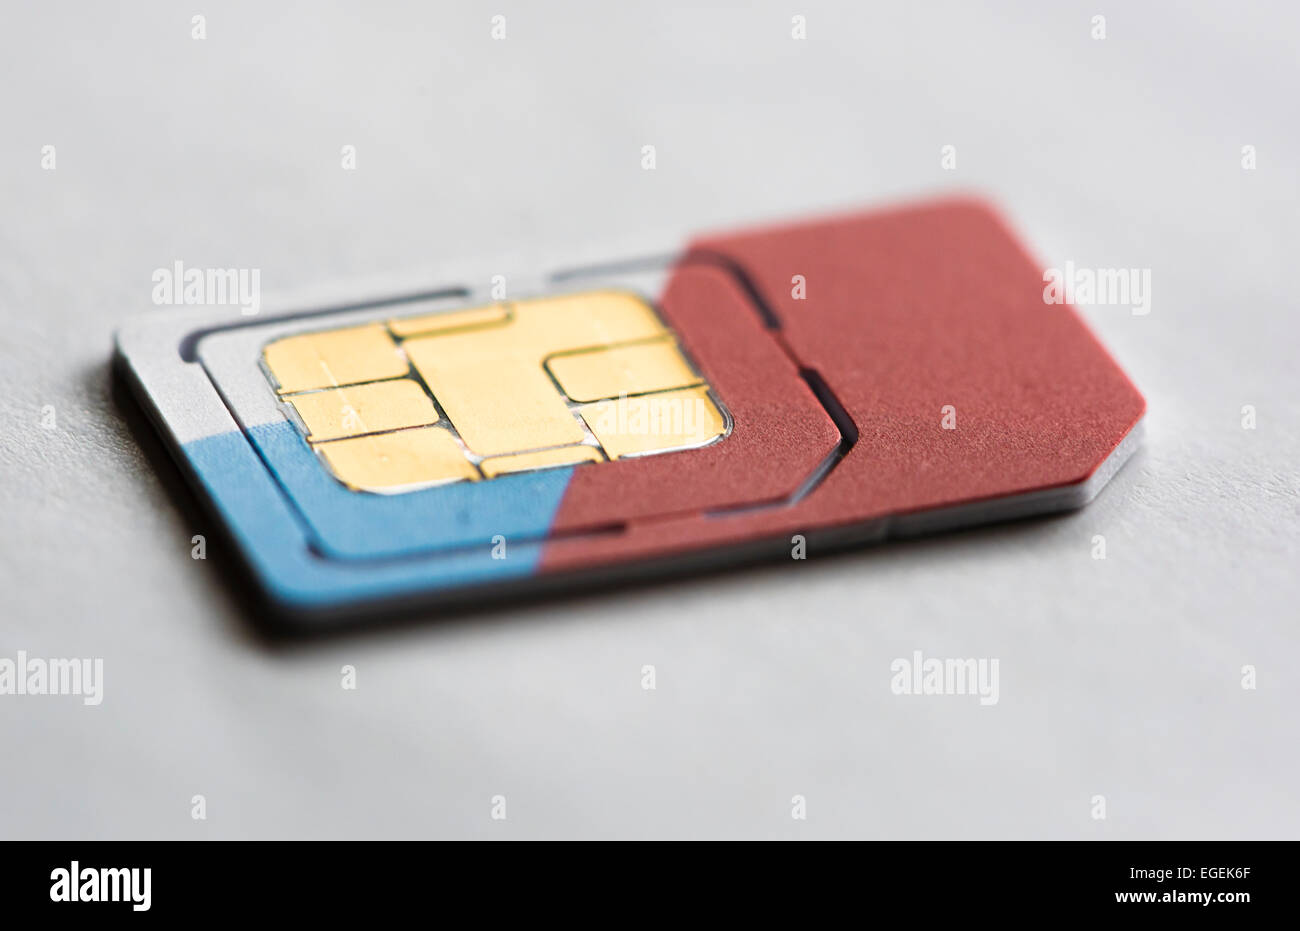 Close up of a SIM-card (subscriber identity module card) for mobile phones. - Stock Image